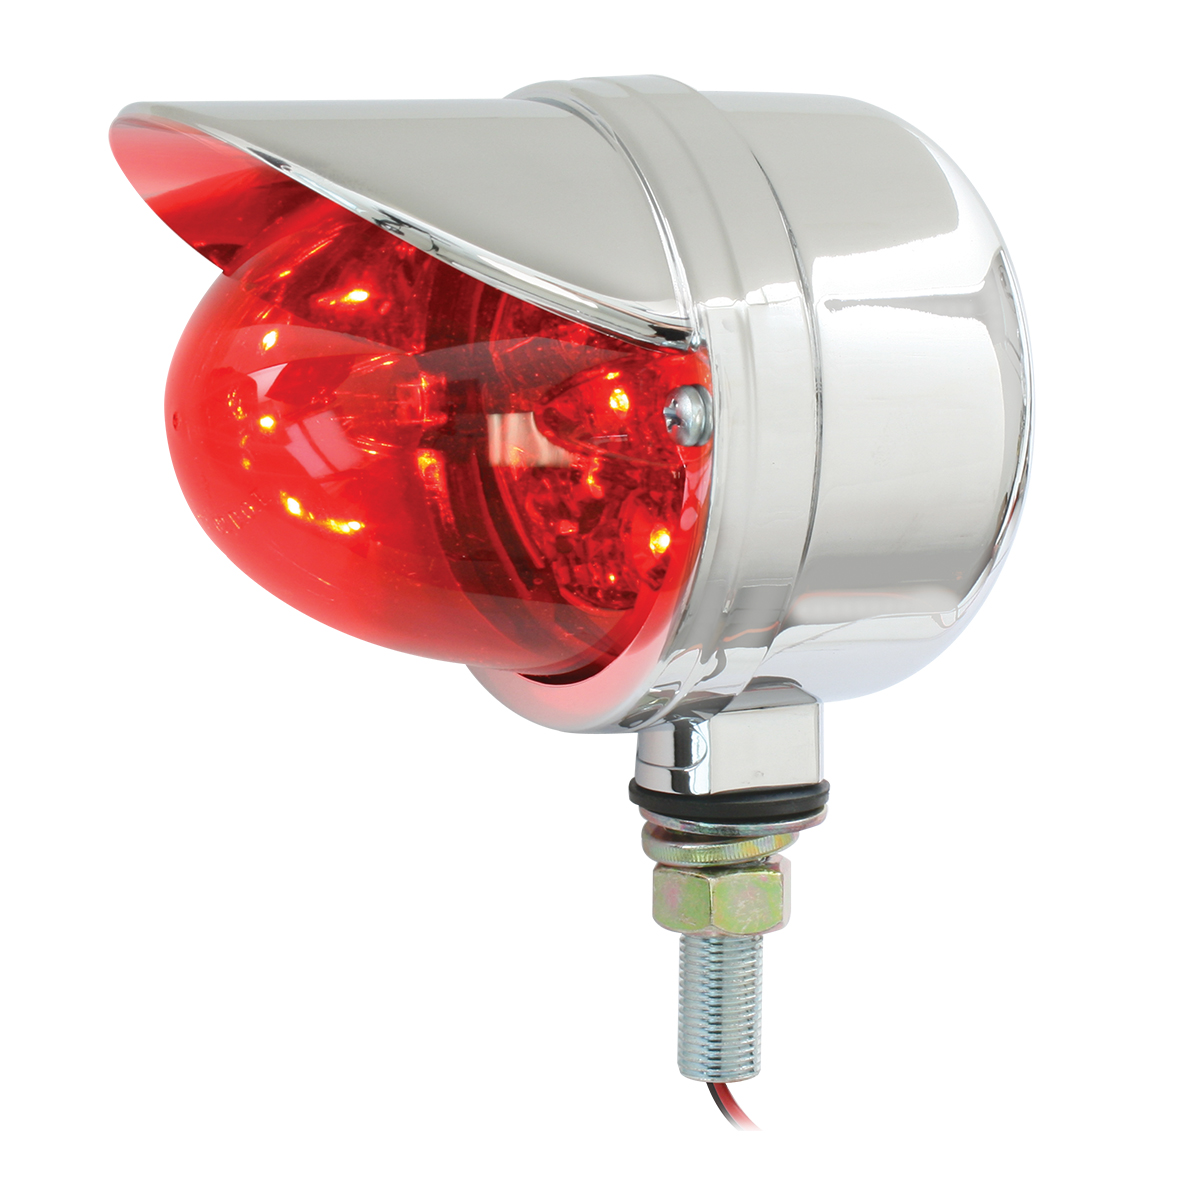 77923 Single Face Spyder LED Pedestal Light in Red/Red